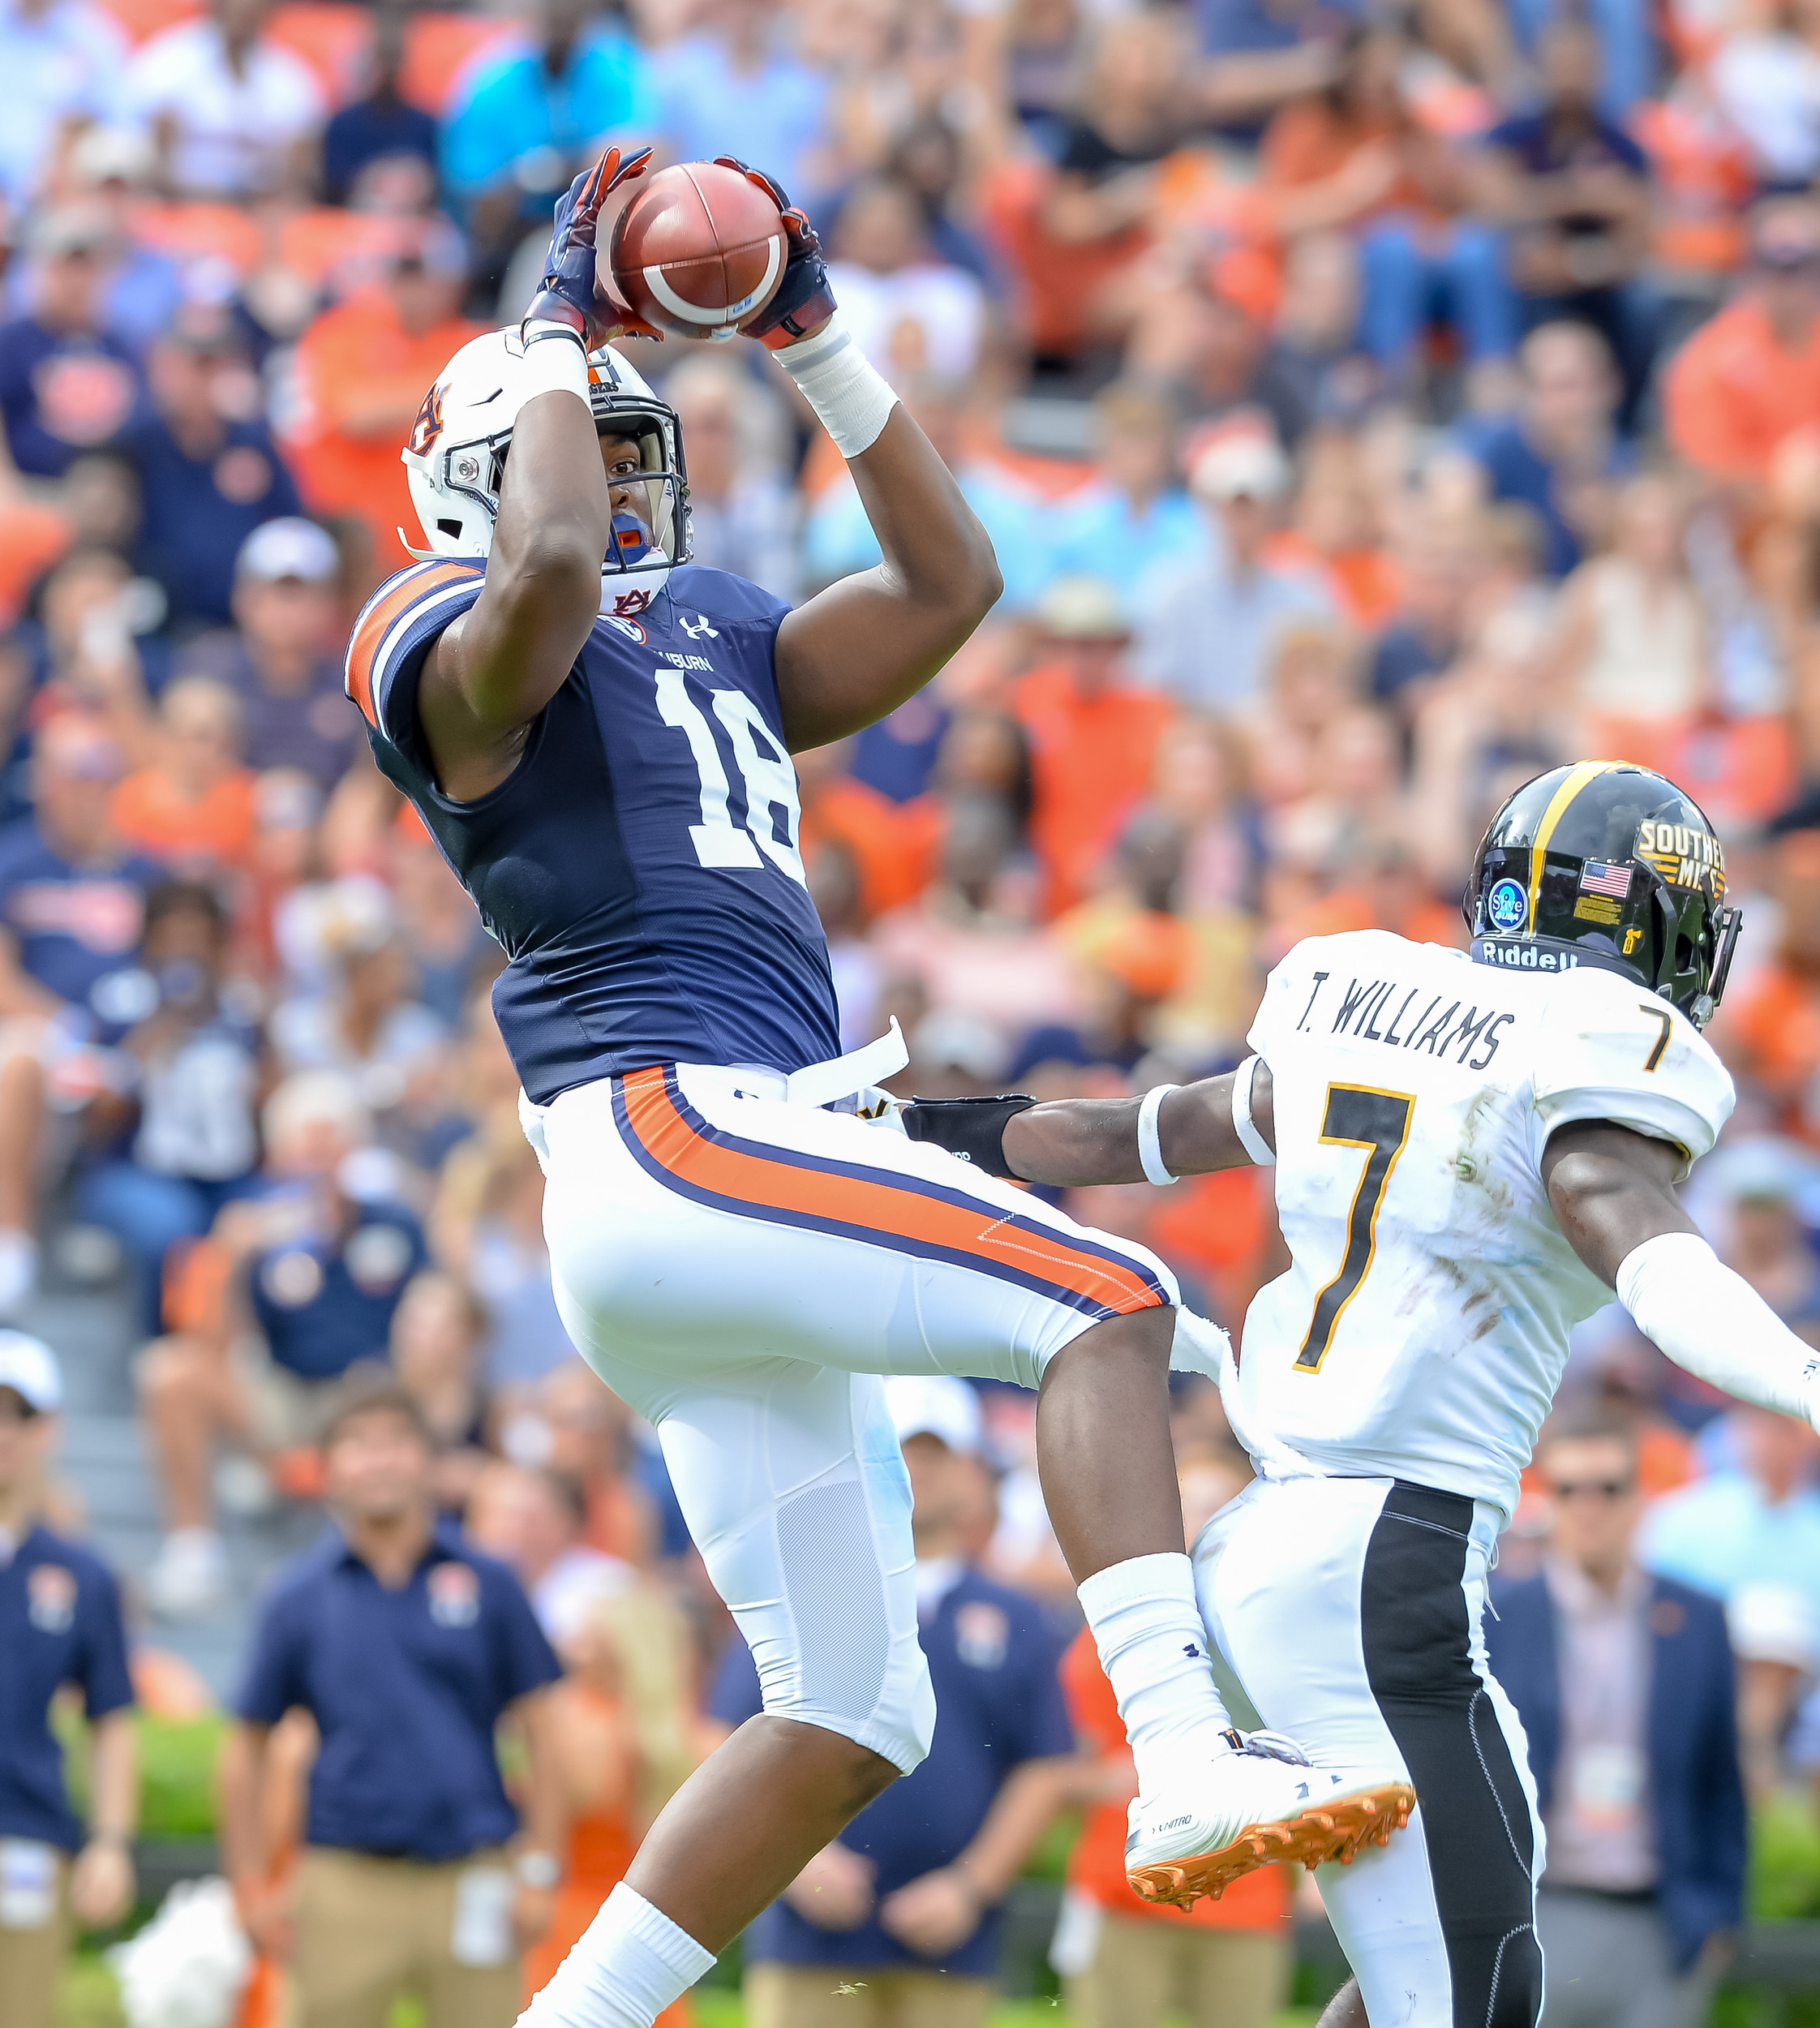 Auburn Tigers wide receiver Seth Williams (18) catches a touchdown pass over Southern Miss Golden Eagles defensive back Ty Williams (7) during the first half of Saturday's game, at Jordan Hare Stadium in Auburn AL. Daily Mountain Eagle -  Jeff Johnsey